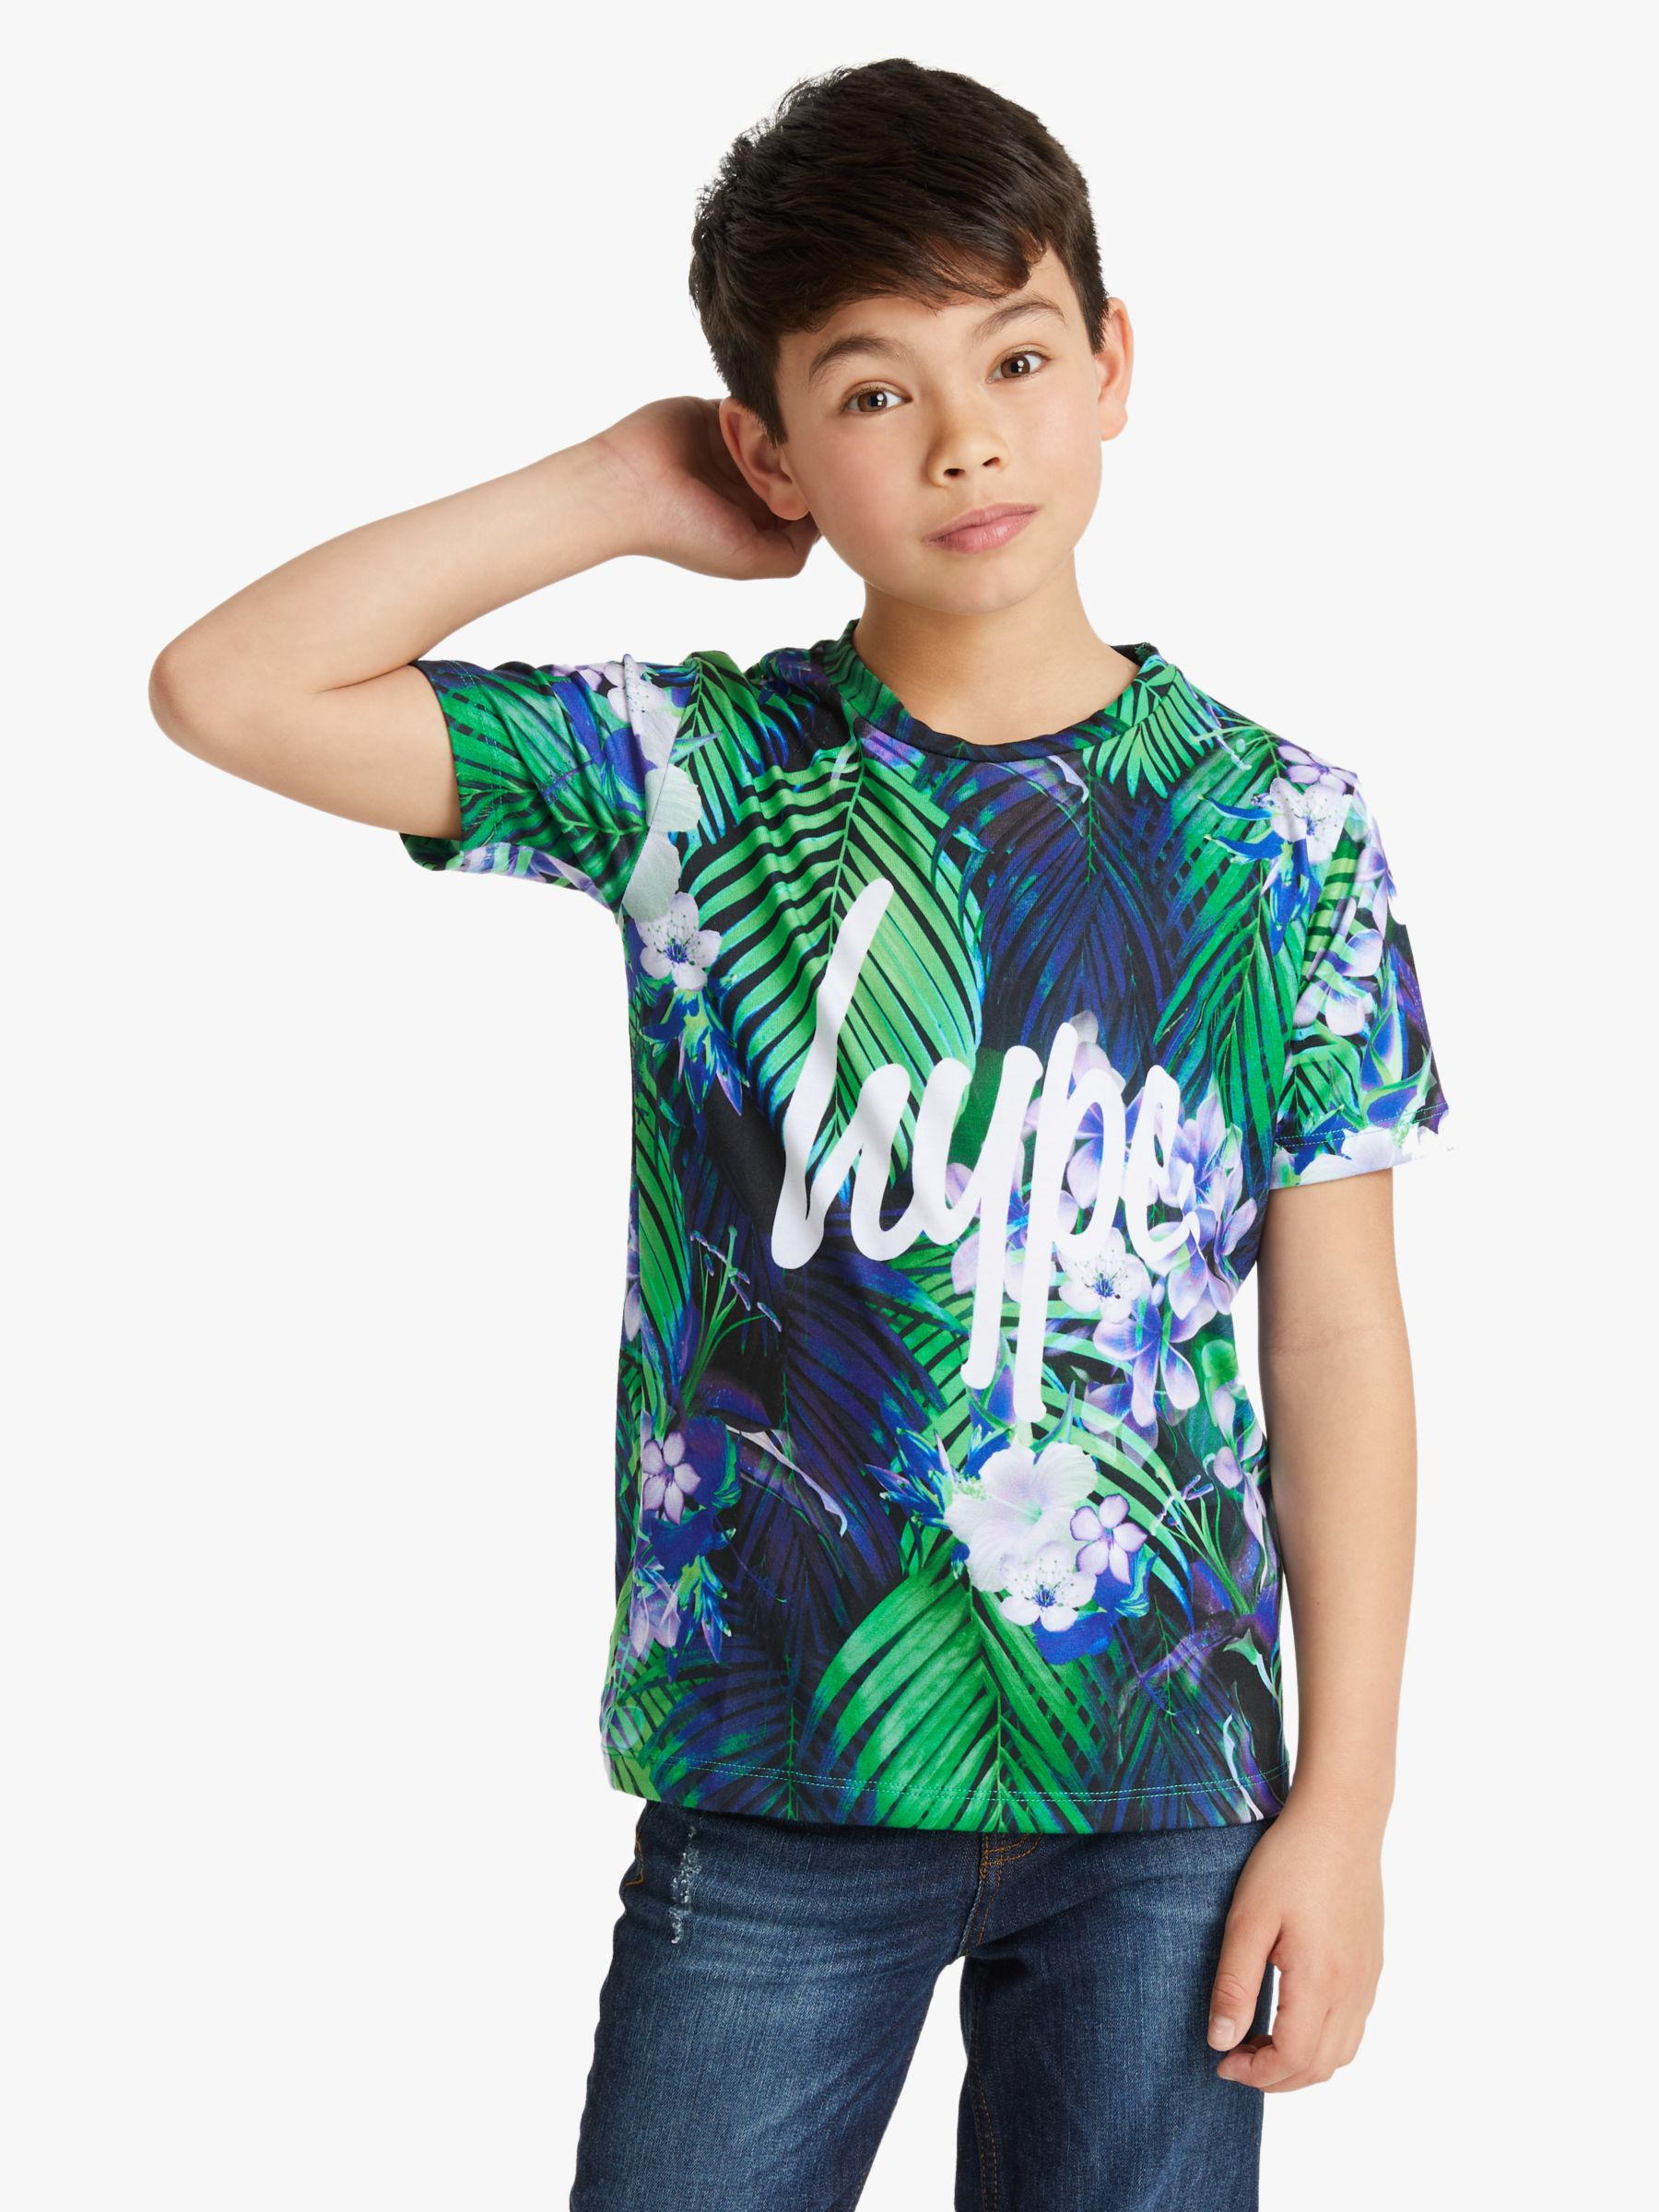 Hype Hype Boys' Tropical Print T-Shirt, Blue/Green